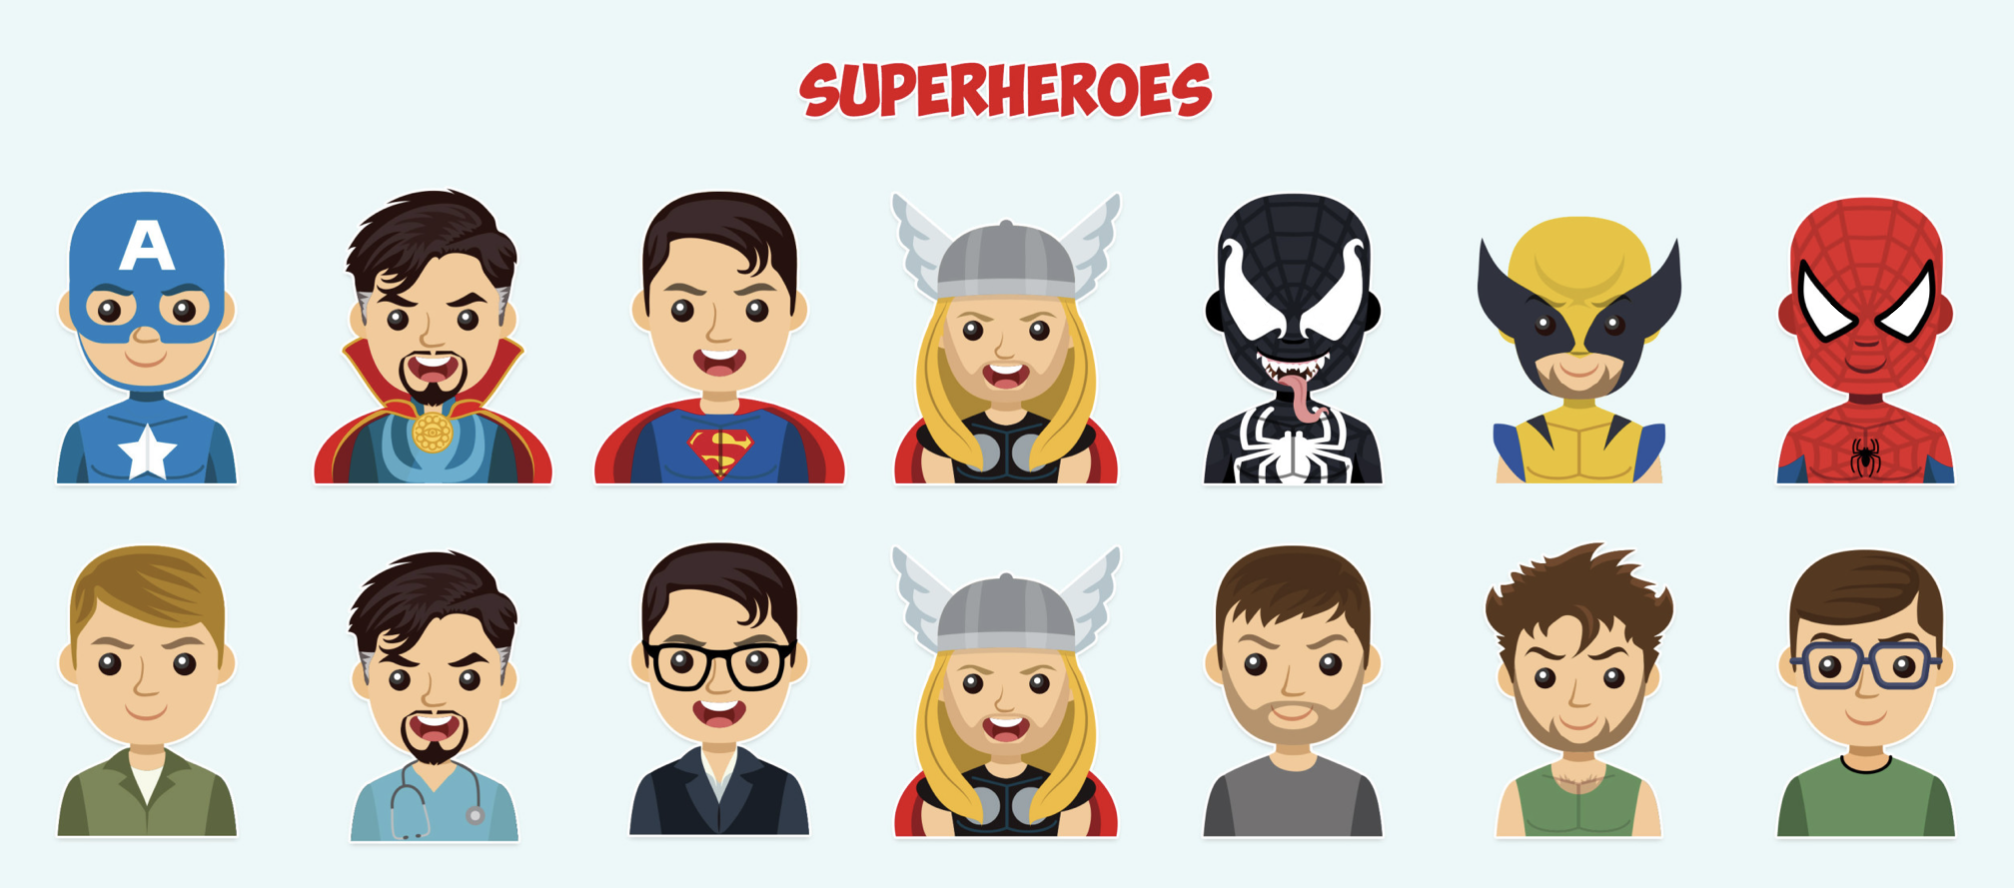 Telegram Superheroes Avatar